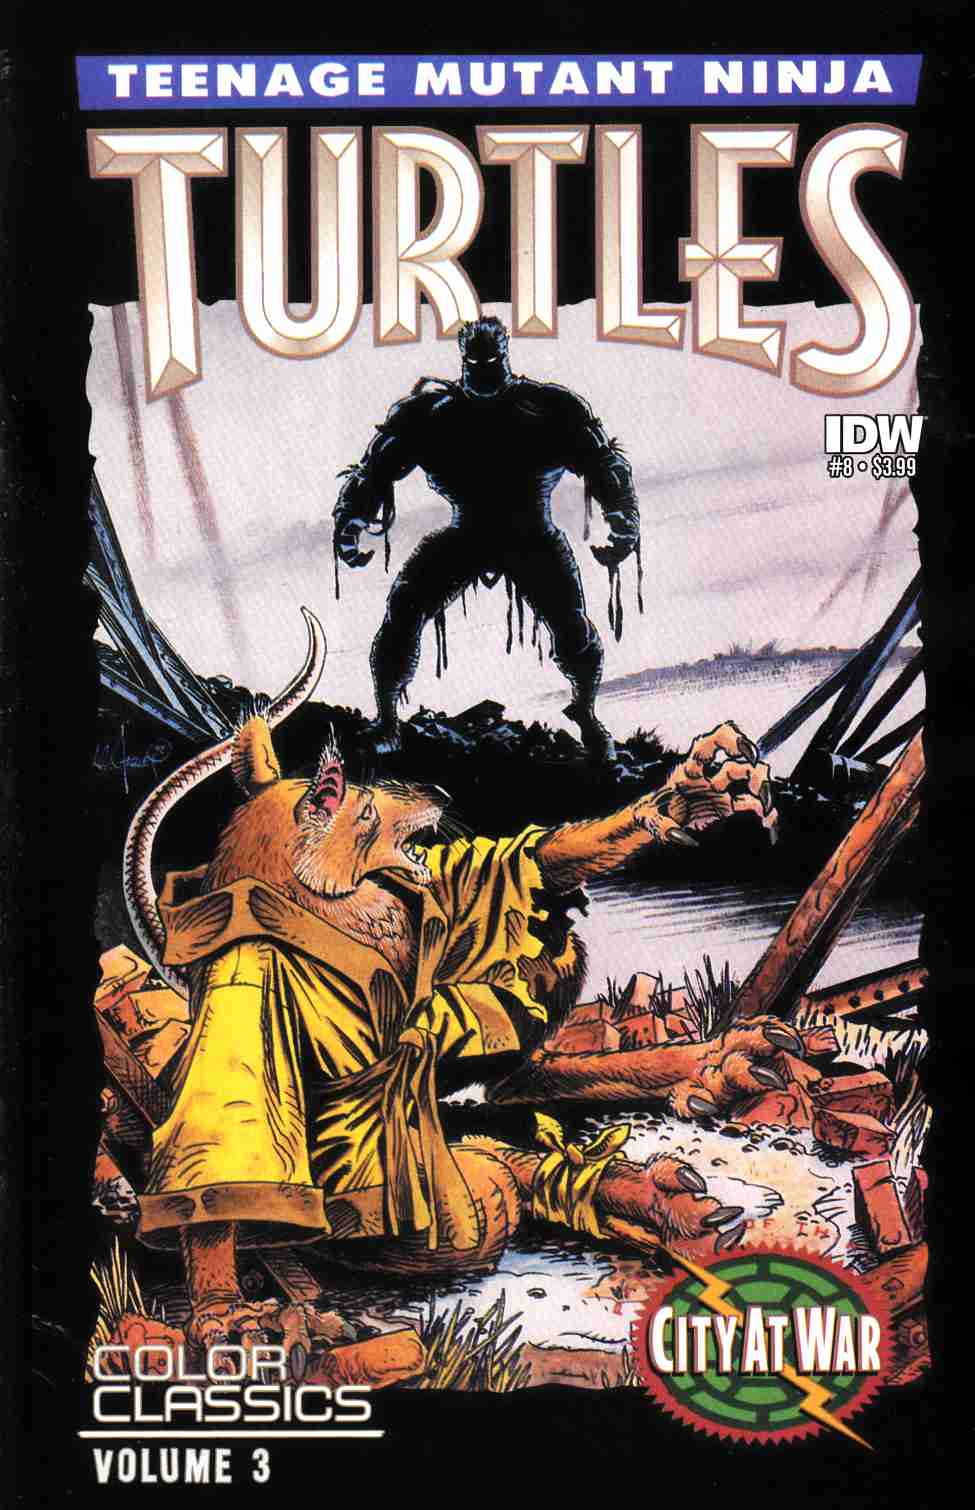 Teenage Mutant Ninja Turtles Color Classics Series 3 #8 [IDW Comic] THUMBNAIL